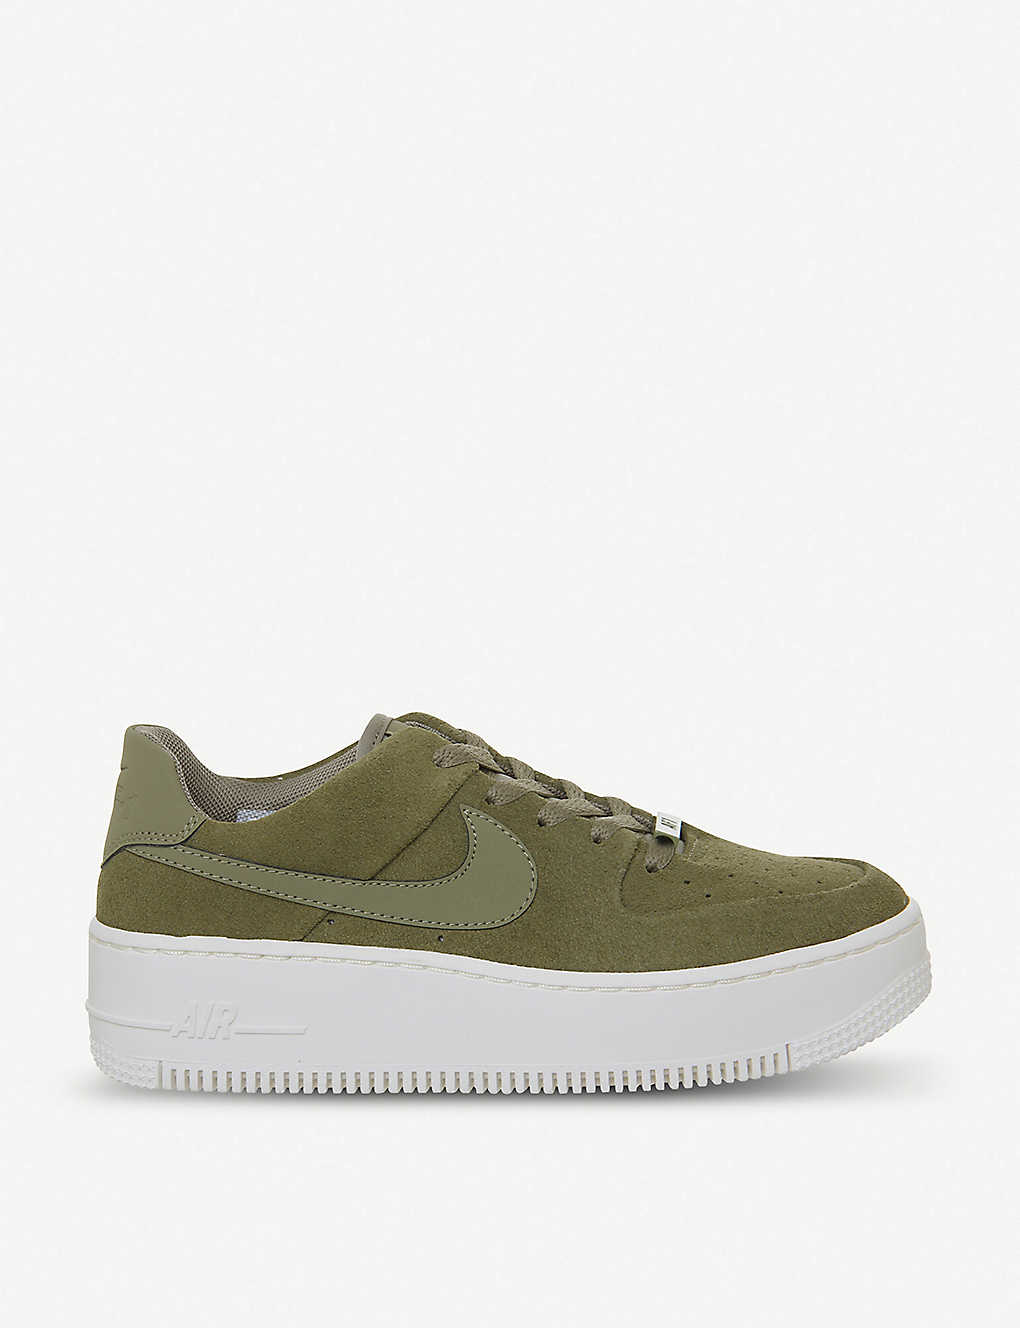 c022f2e23 Air Force 1 Sage suede trainers - Trooper phantom ...